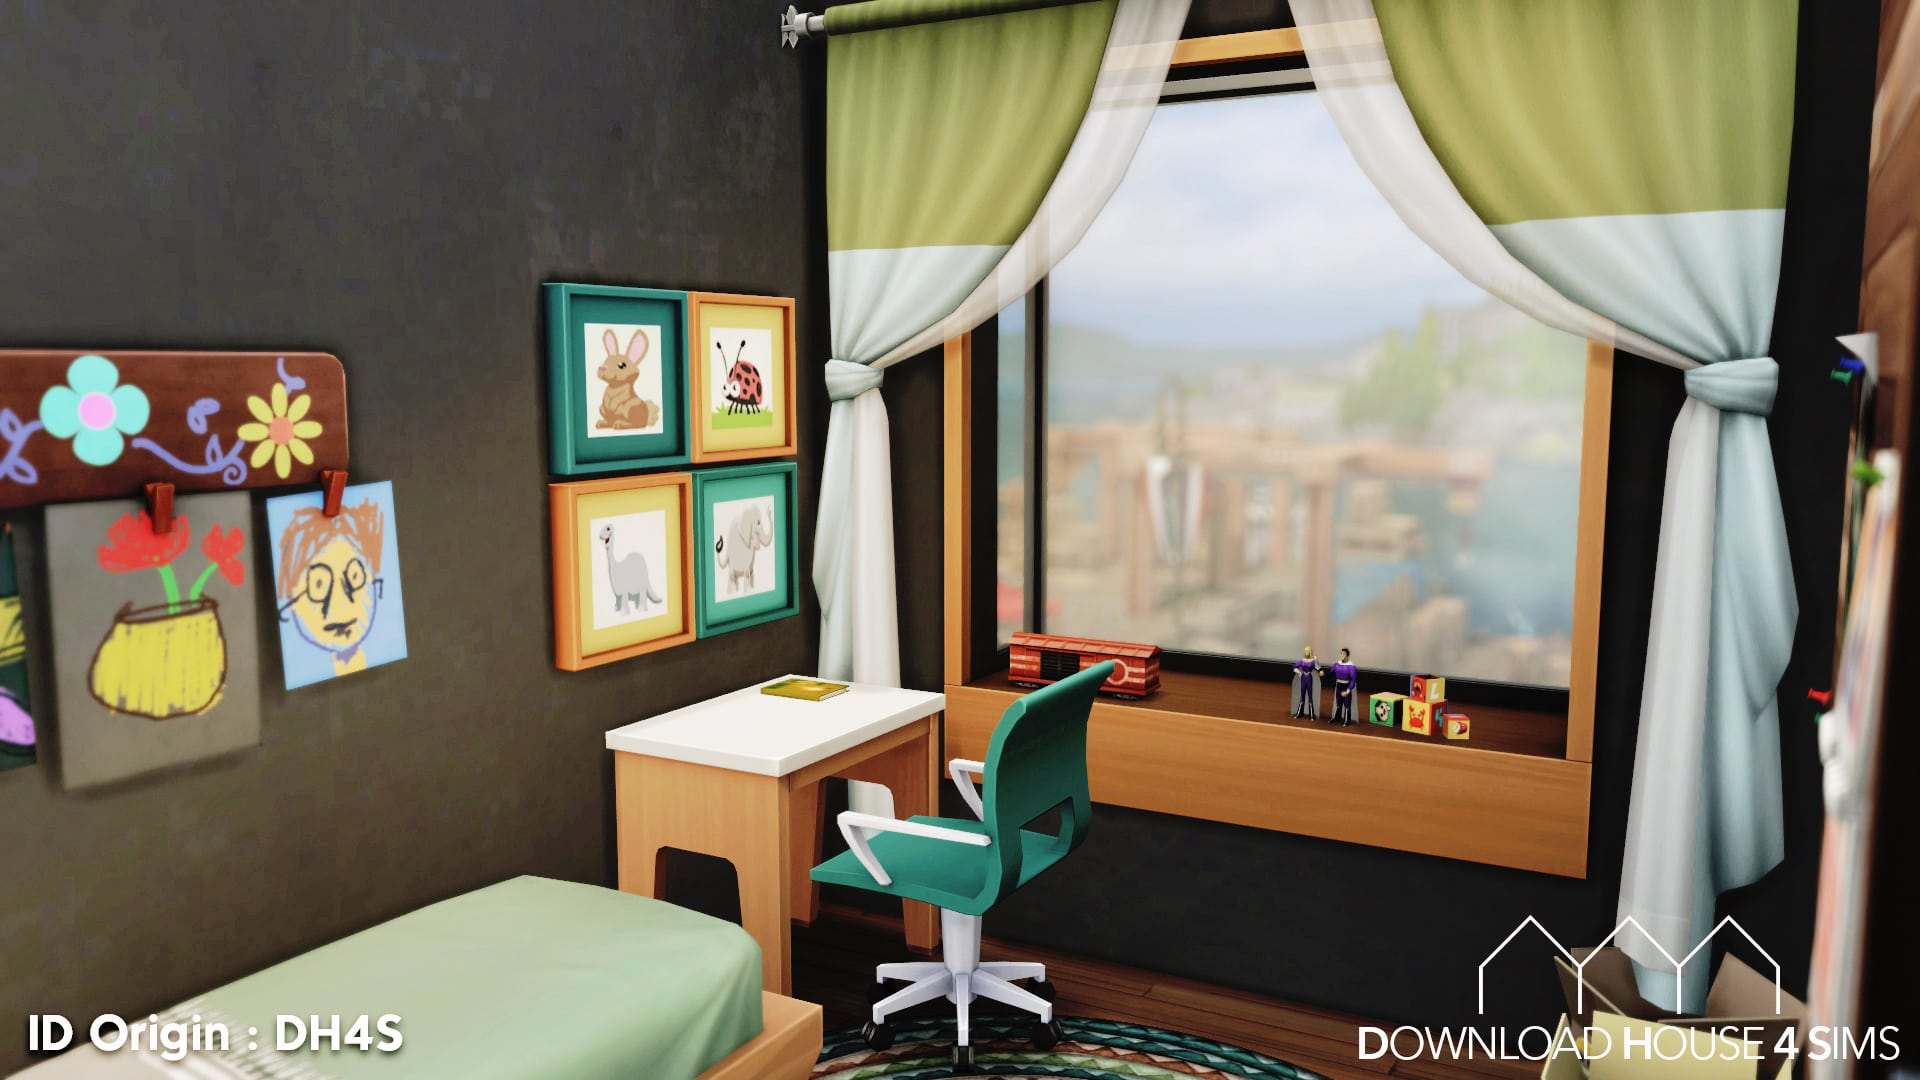 DH4S-Download-house-for-sims-dock-container-eco-house-24